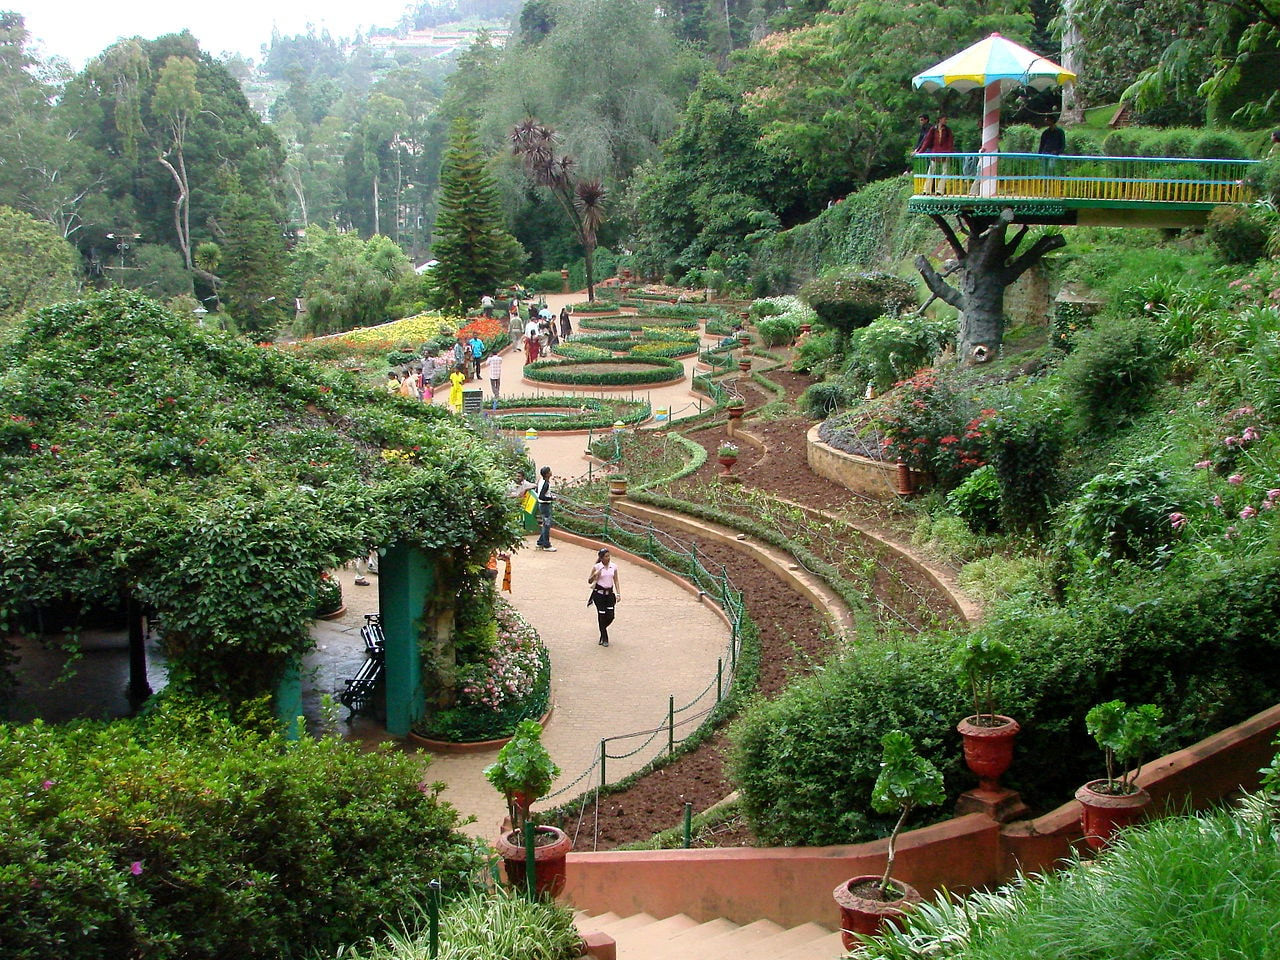 1280px-Botanical_Gardens_-_Ootacamund_(Ooty)_-_India_03